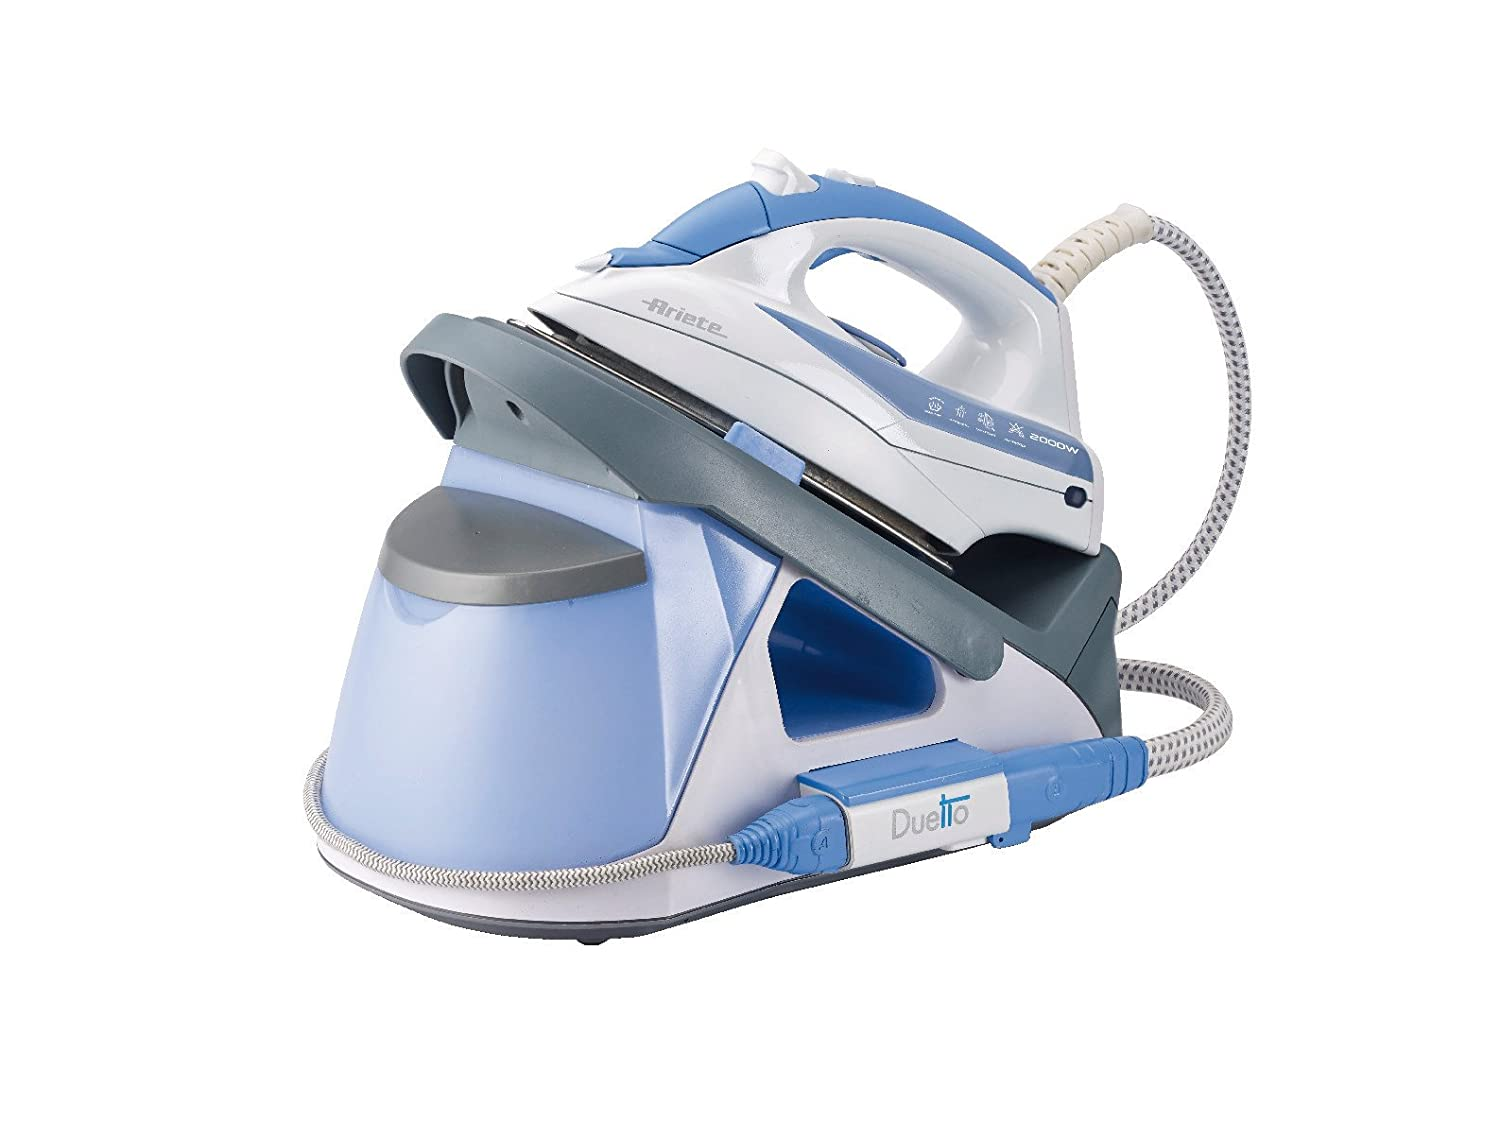 Ariete 6431 CENTRO DE PLANCHADO STIROMATIC DUETTO 2000 W 1.5 litros, Acero Inoxidable, Azul, Color blanco: Amazon.es: Hogar